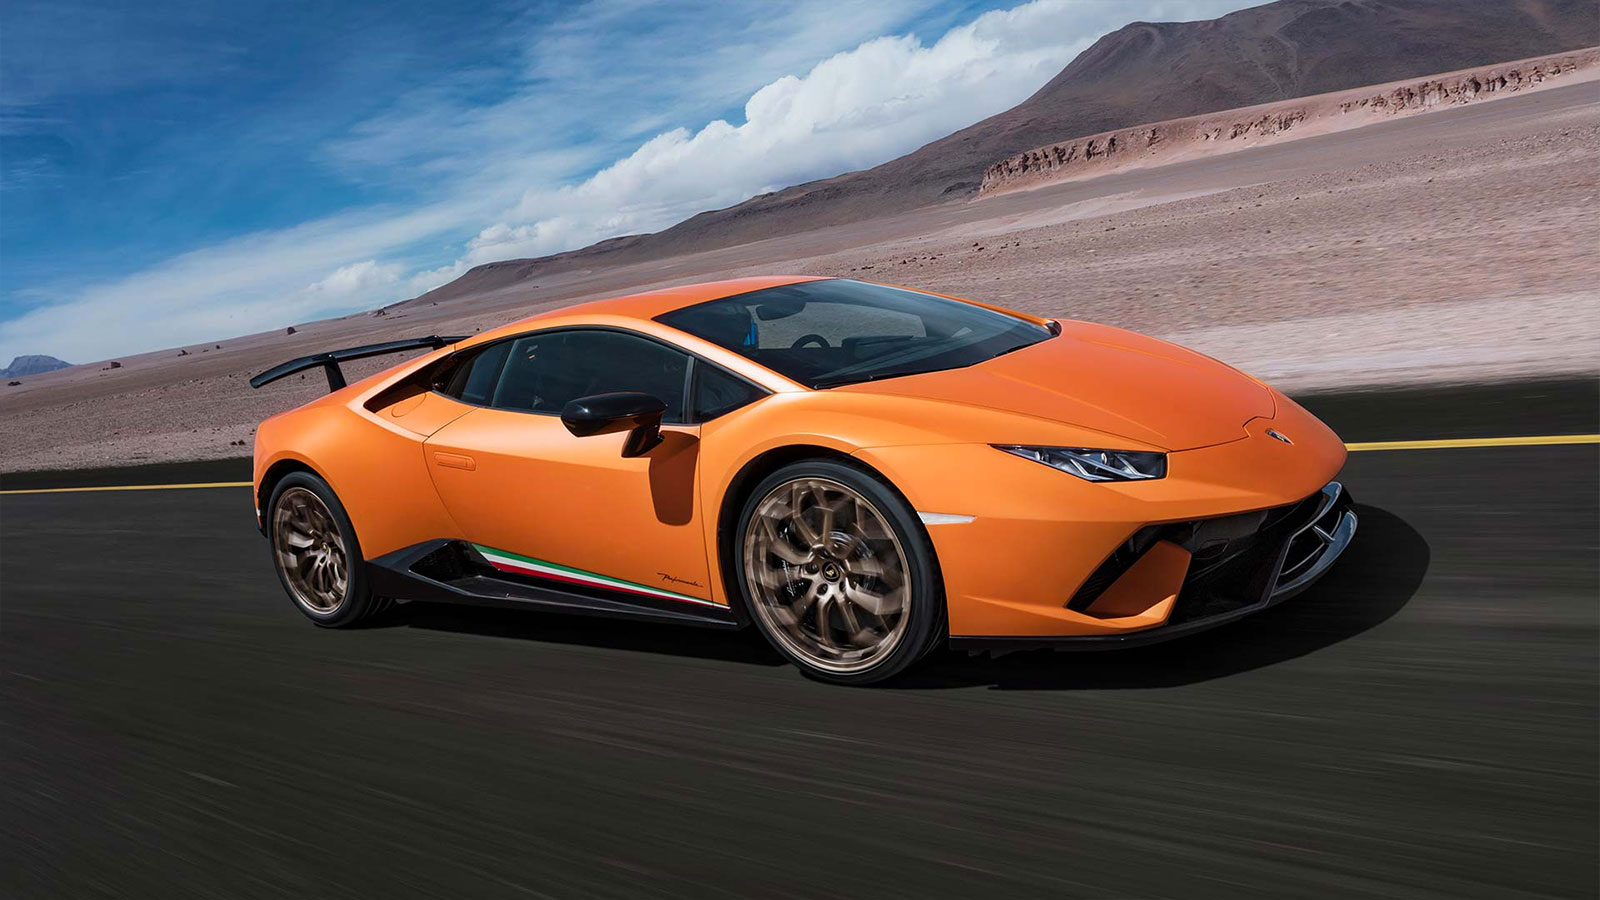 Lamborghini Huracan Performante - Raging Technology image 2